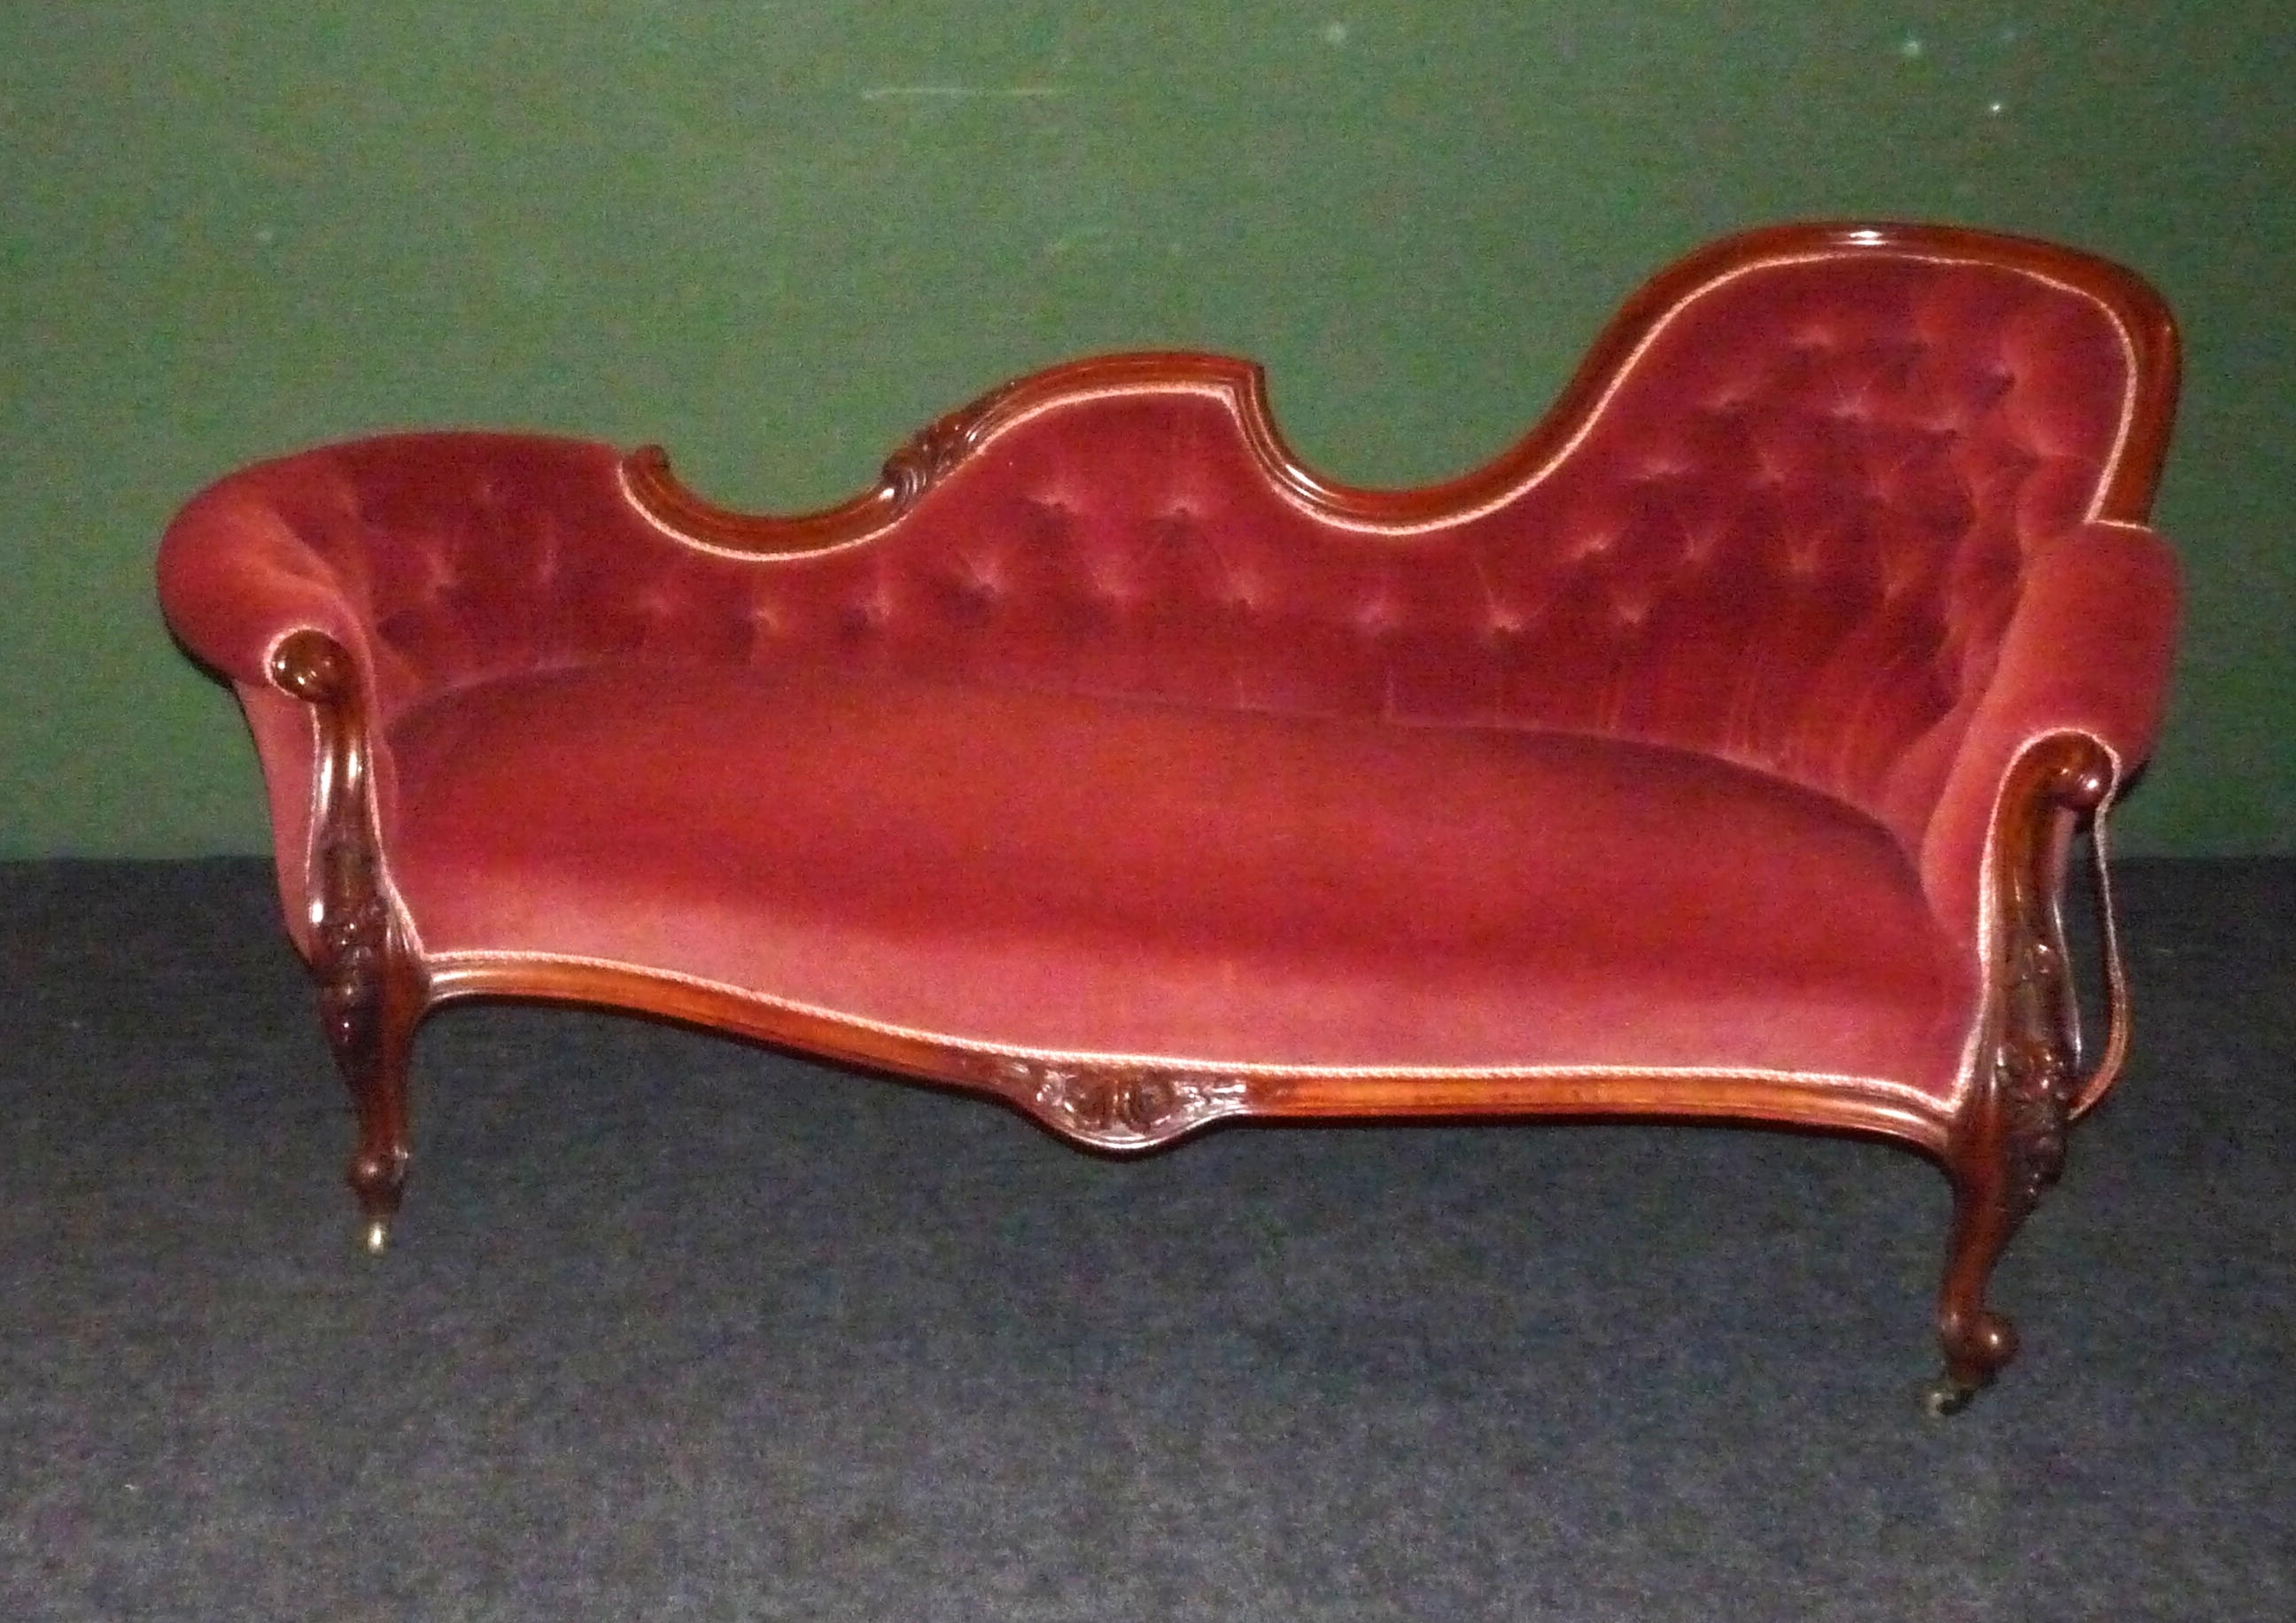 Victorian Chaise Lounges Regarding Most Recent Vintage Victorian Chaise Lounge – Home Design And Decor (View 13 of 15)